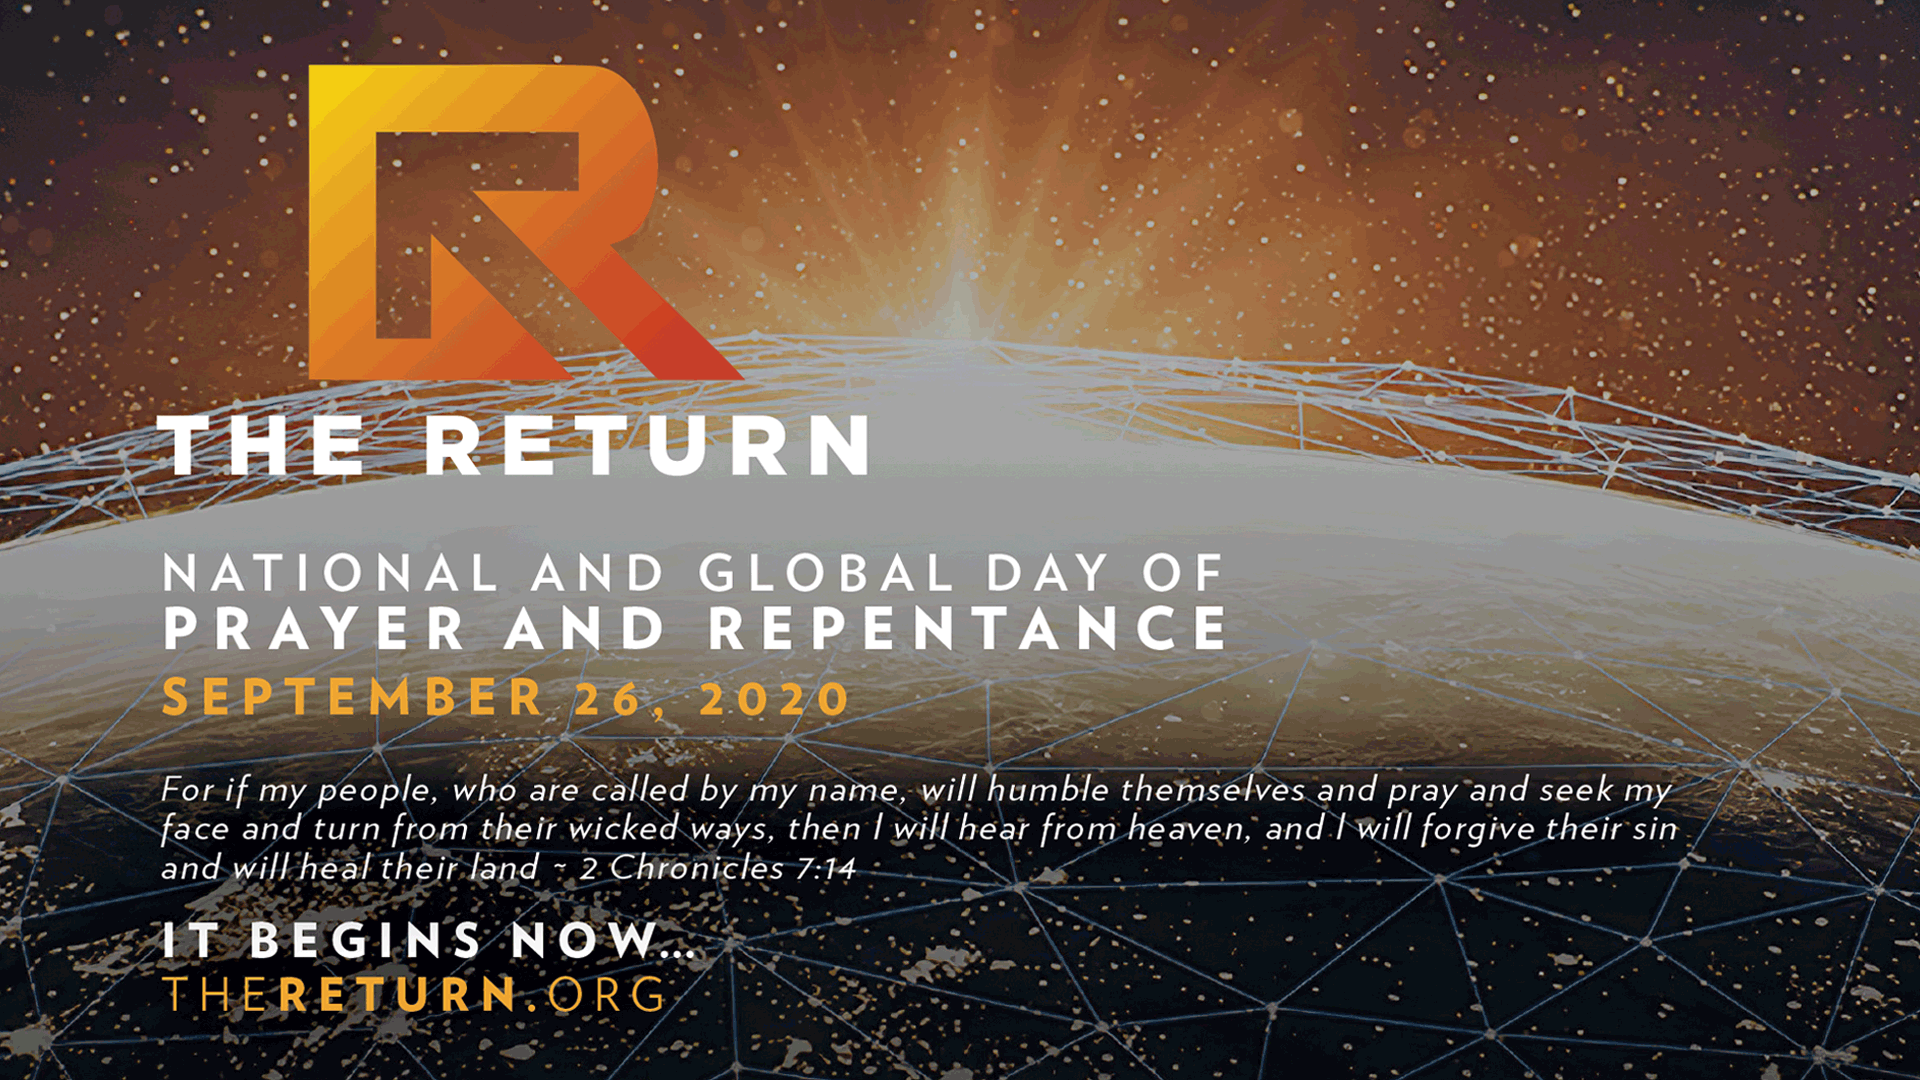 https://thereturn.org/